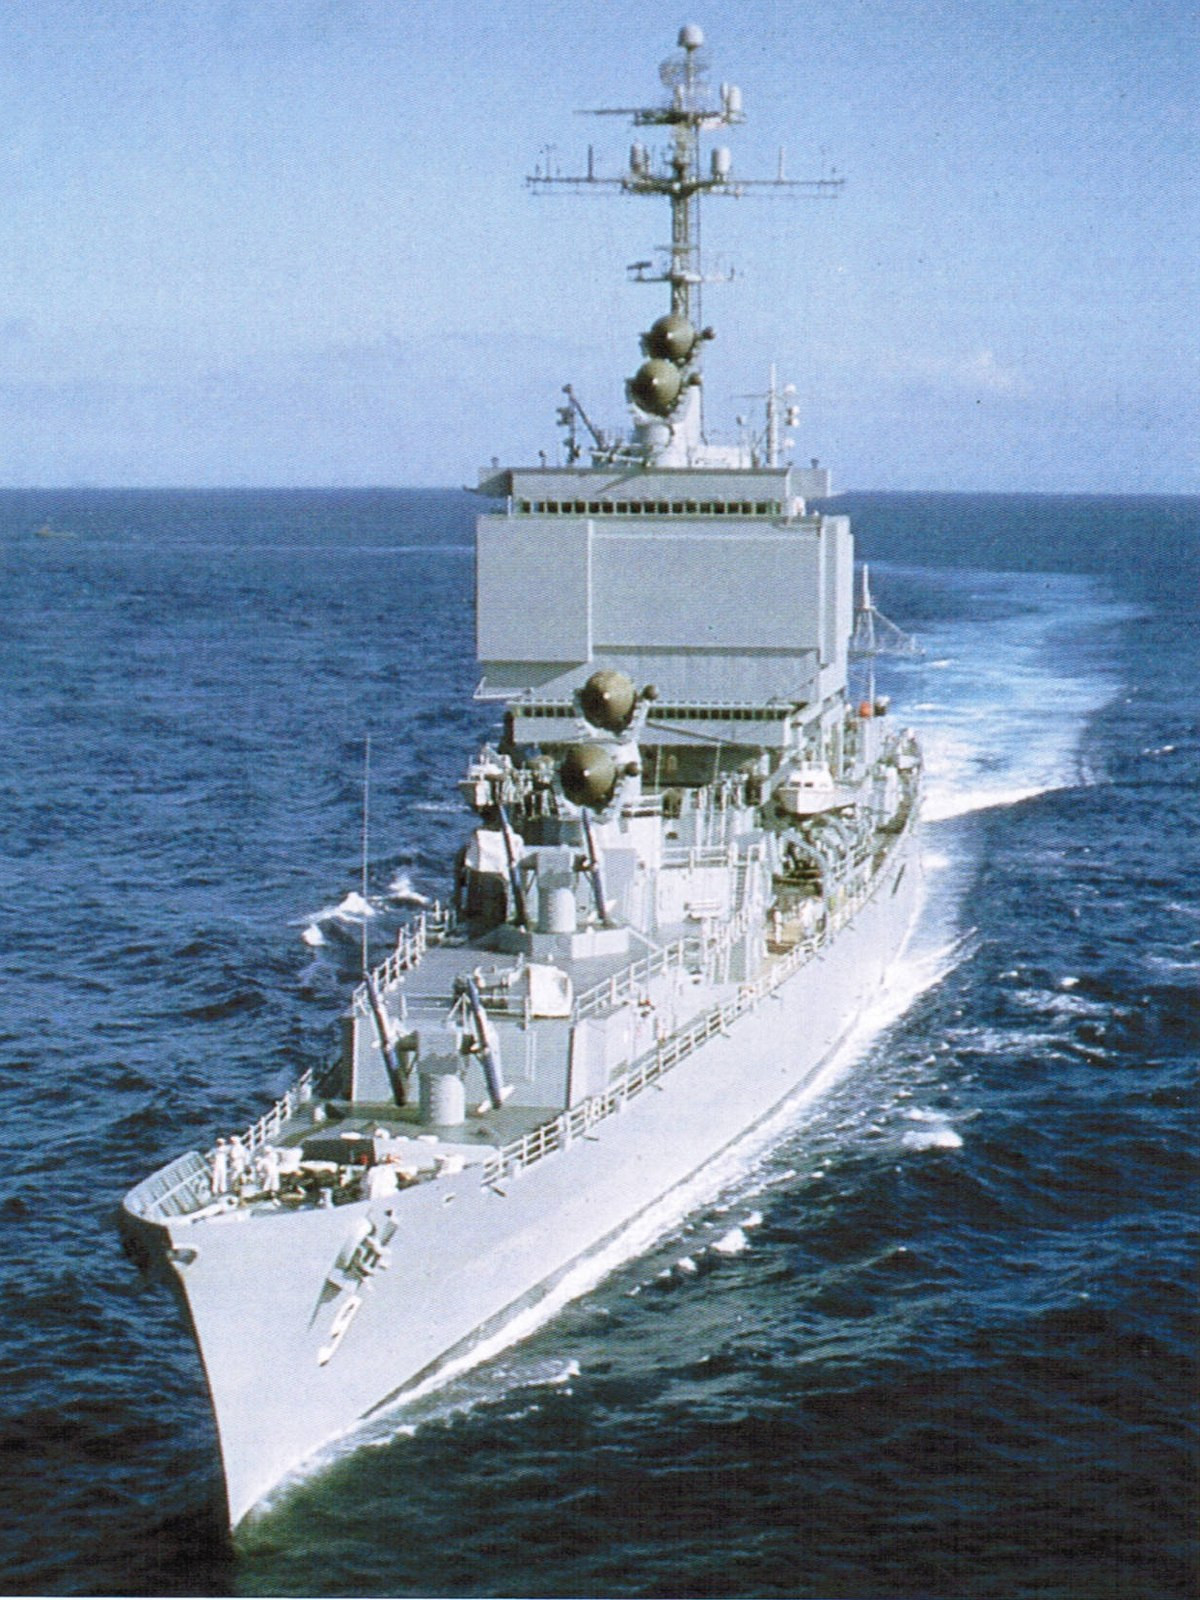 1200px-Bow_view_of_USS_Long_Beach_(CGN-9